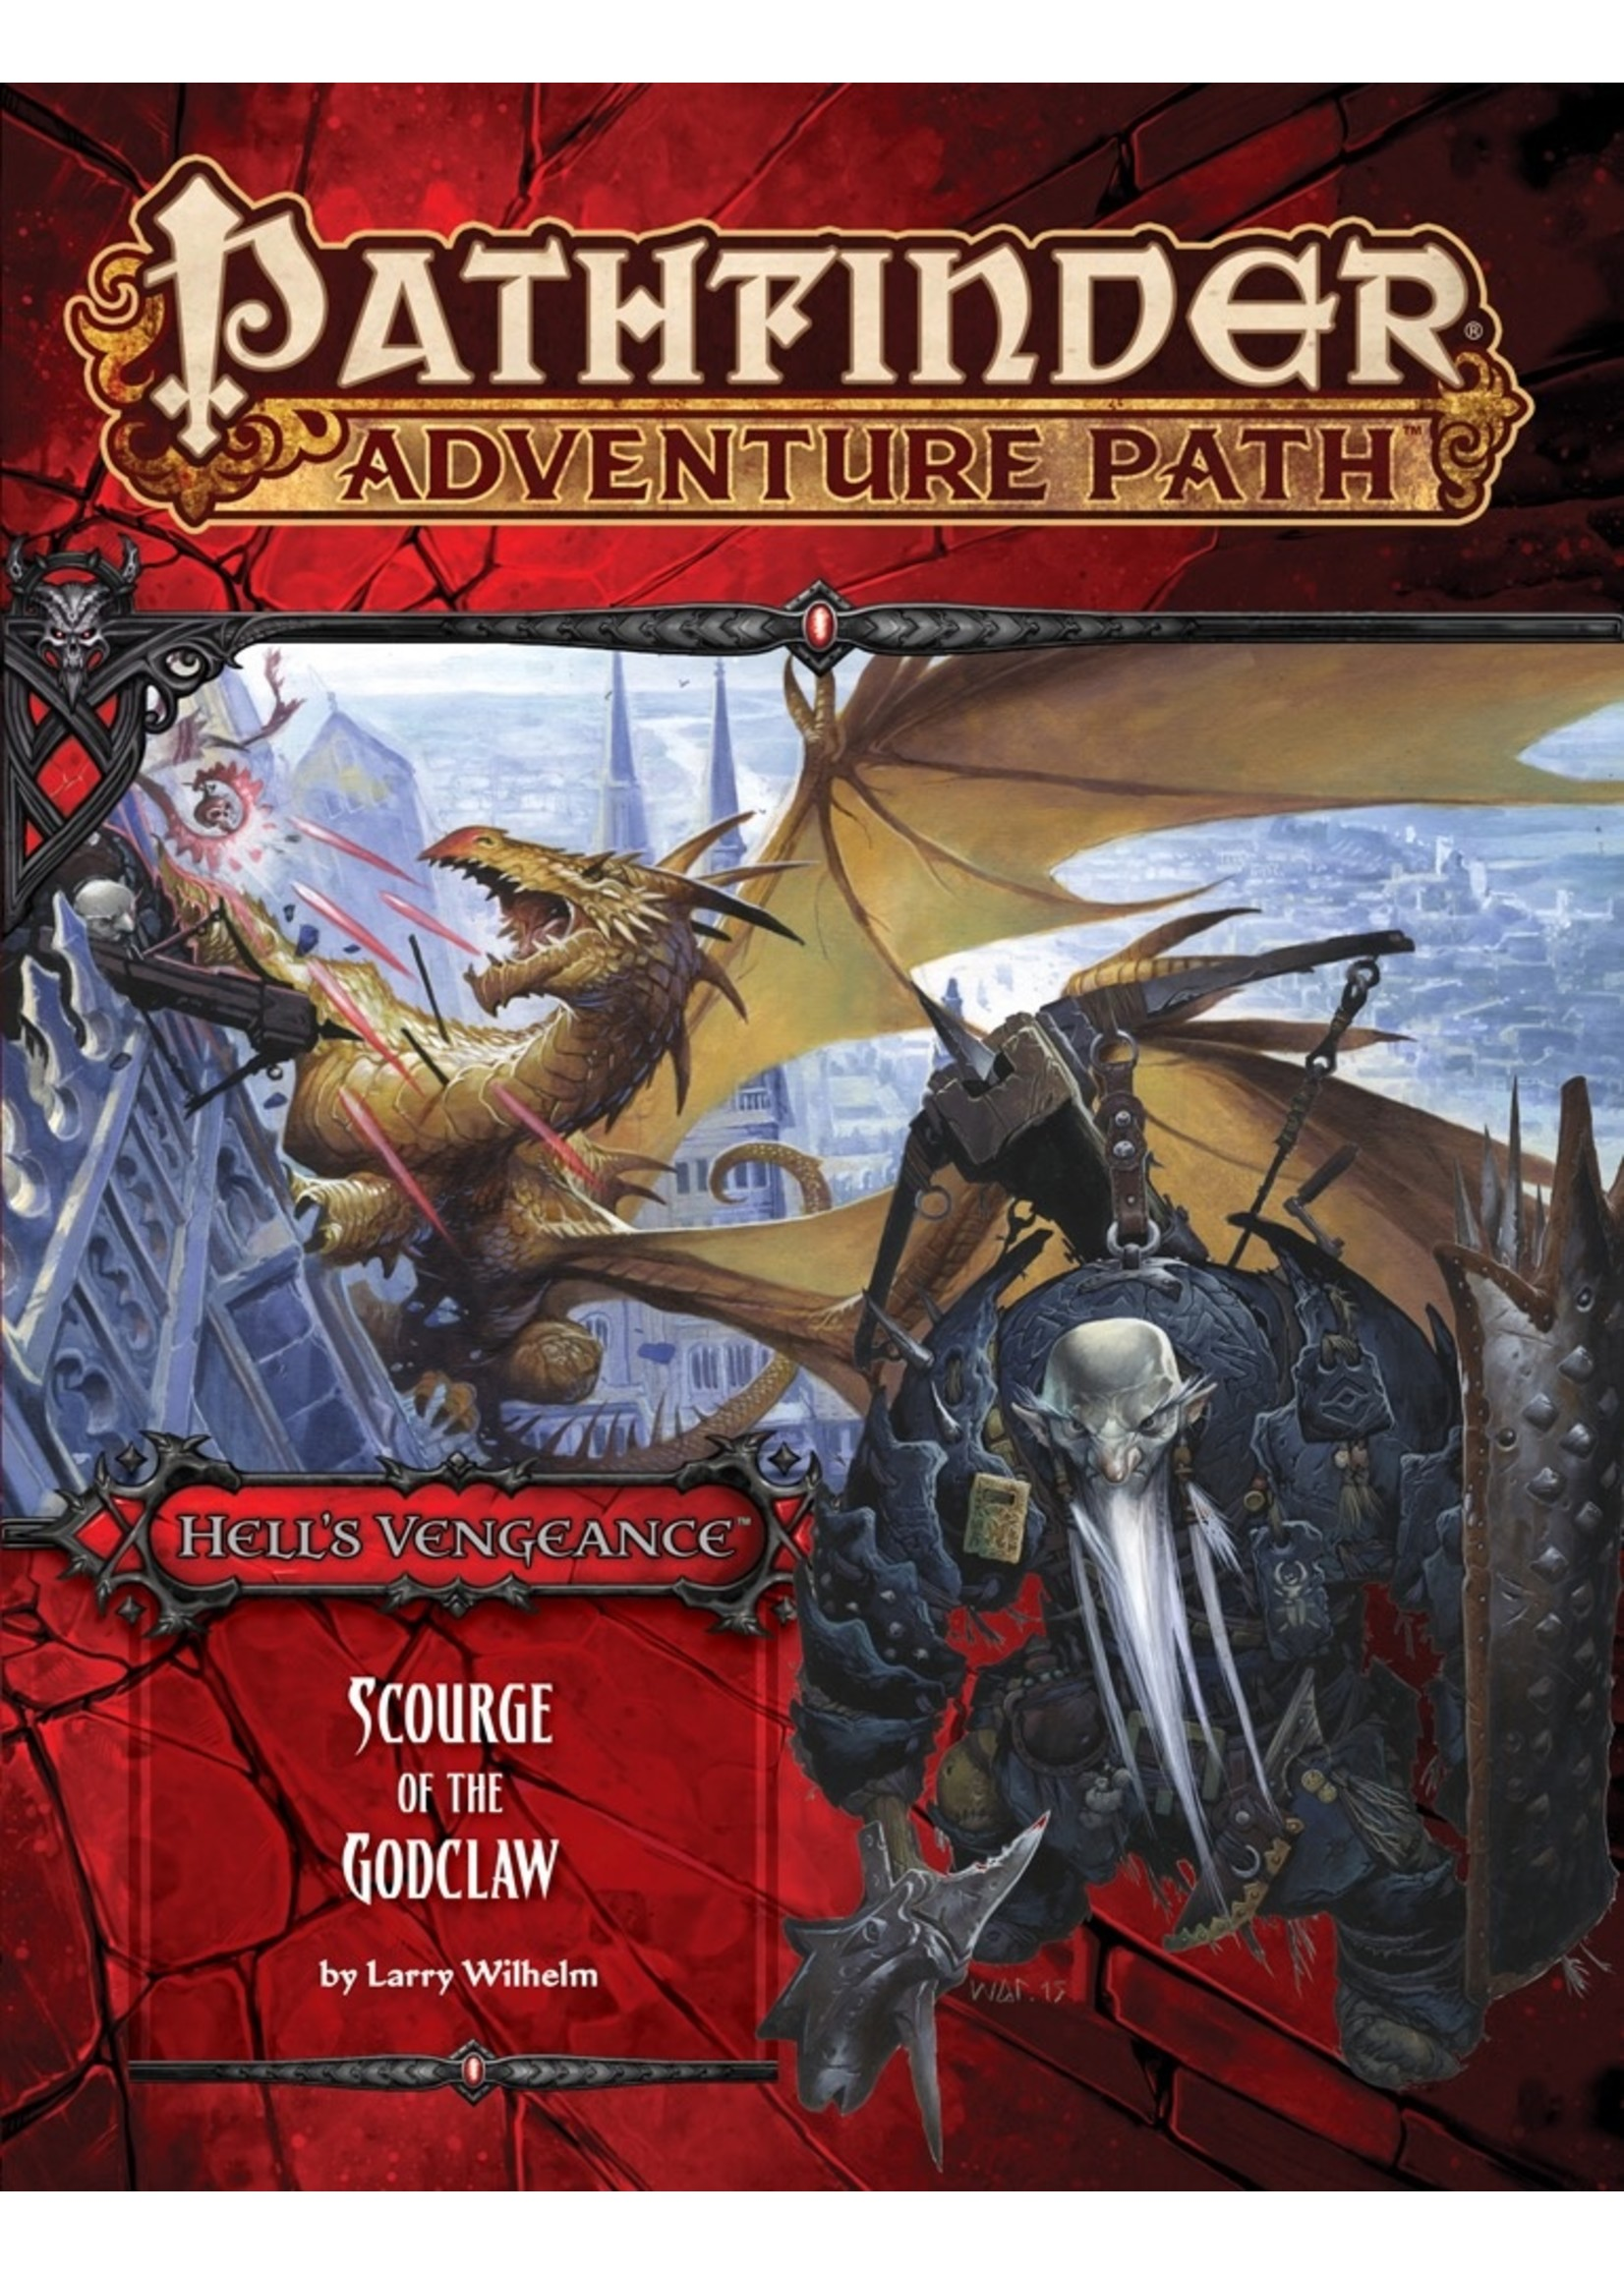 Pathfinder RPG: Adventure Path - Hell's Vengeance Part 5 - Scourge of the Godclaw